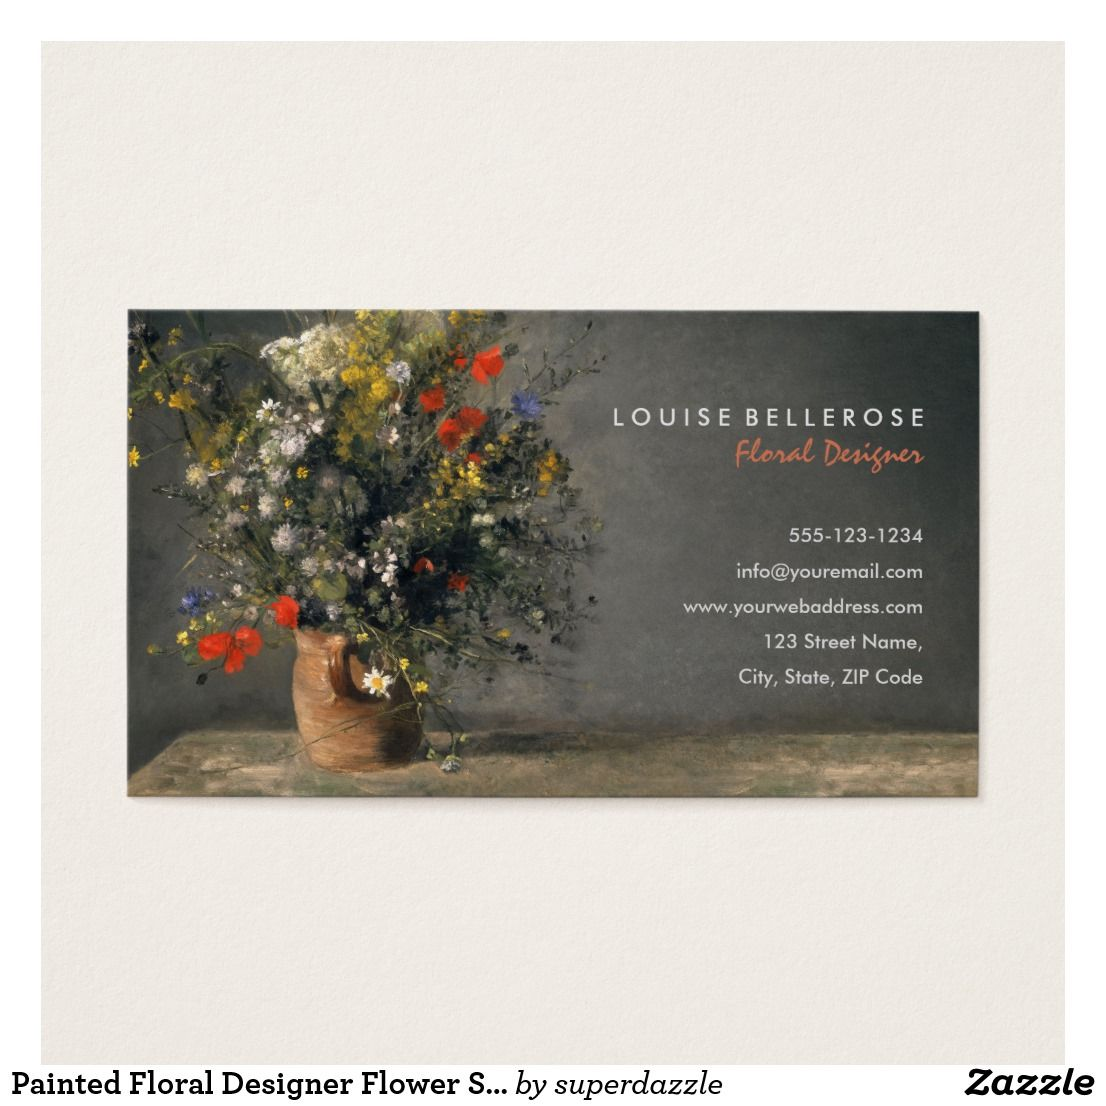 Painted Floral Designer Flower Stylist Business Card Zazzle Com Flower Background Design Wedding Flower Arrangements Floral Business Cards